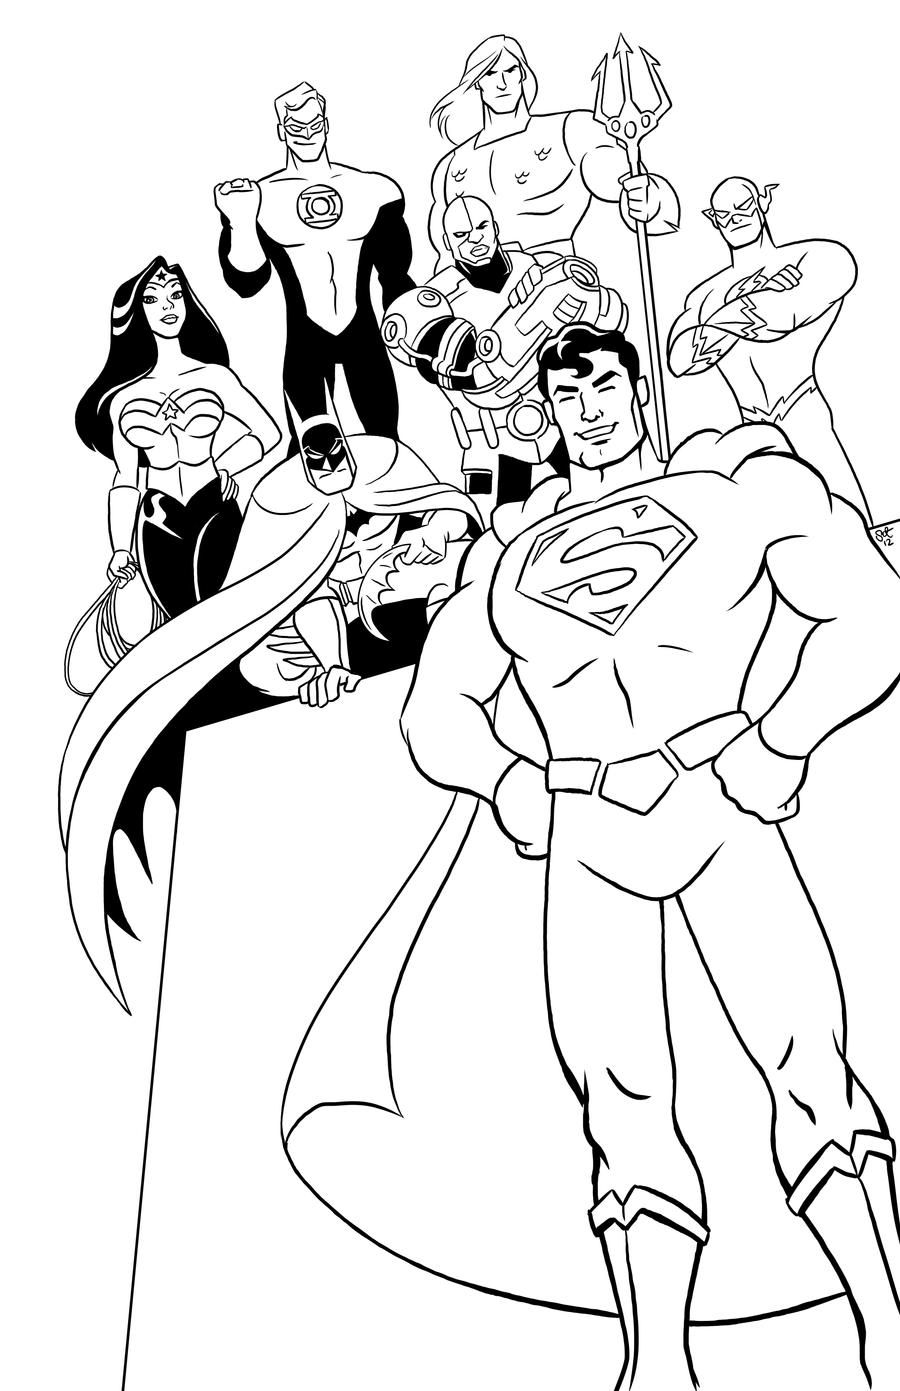 superman 05 rcj source furthermore New52 Superman02 as well 0c5c4d55315b4a2fe55768d8fac6e94d additionally lego batman coloring pages for boys 14 further my version of the jla new 52  by scootah91 d4ujm64 furthermore free coloring pages of batman1 besides new 52 nightwing version 03 by jeansinclairarts d6l199c likewise batman coloring pages batman printable coloring pages free also 28c420d3537522f3eef563b5bf11fc96 likewise batman coloring pages 8 further 8TEeGajTa. on batman new 52 coloring pages printable